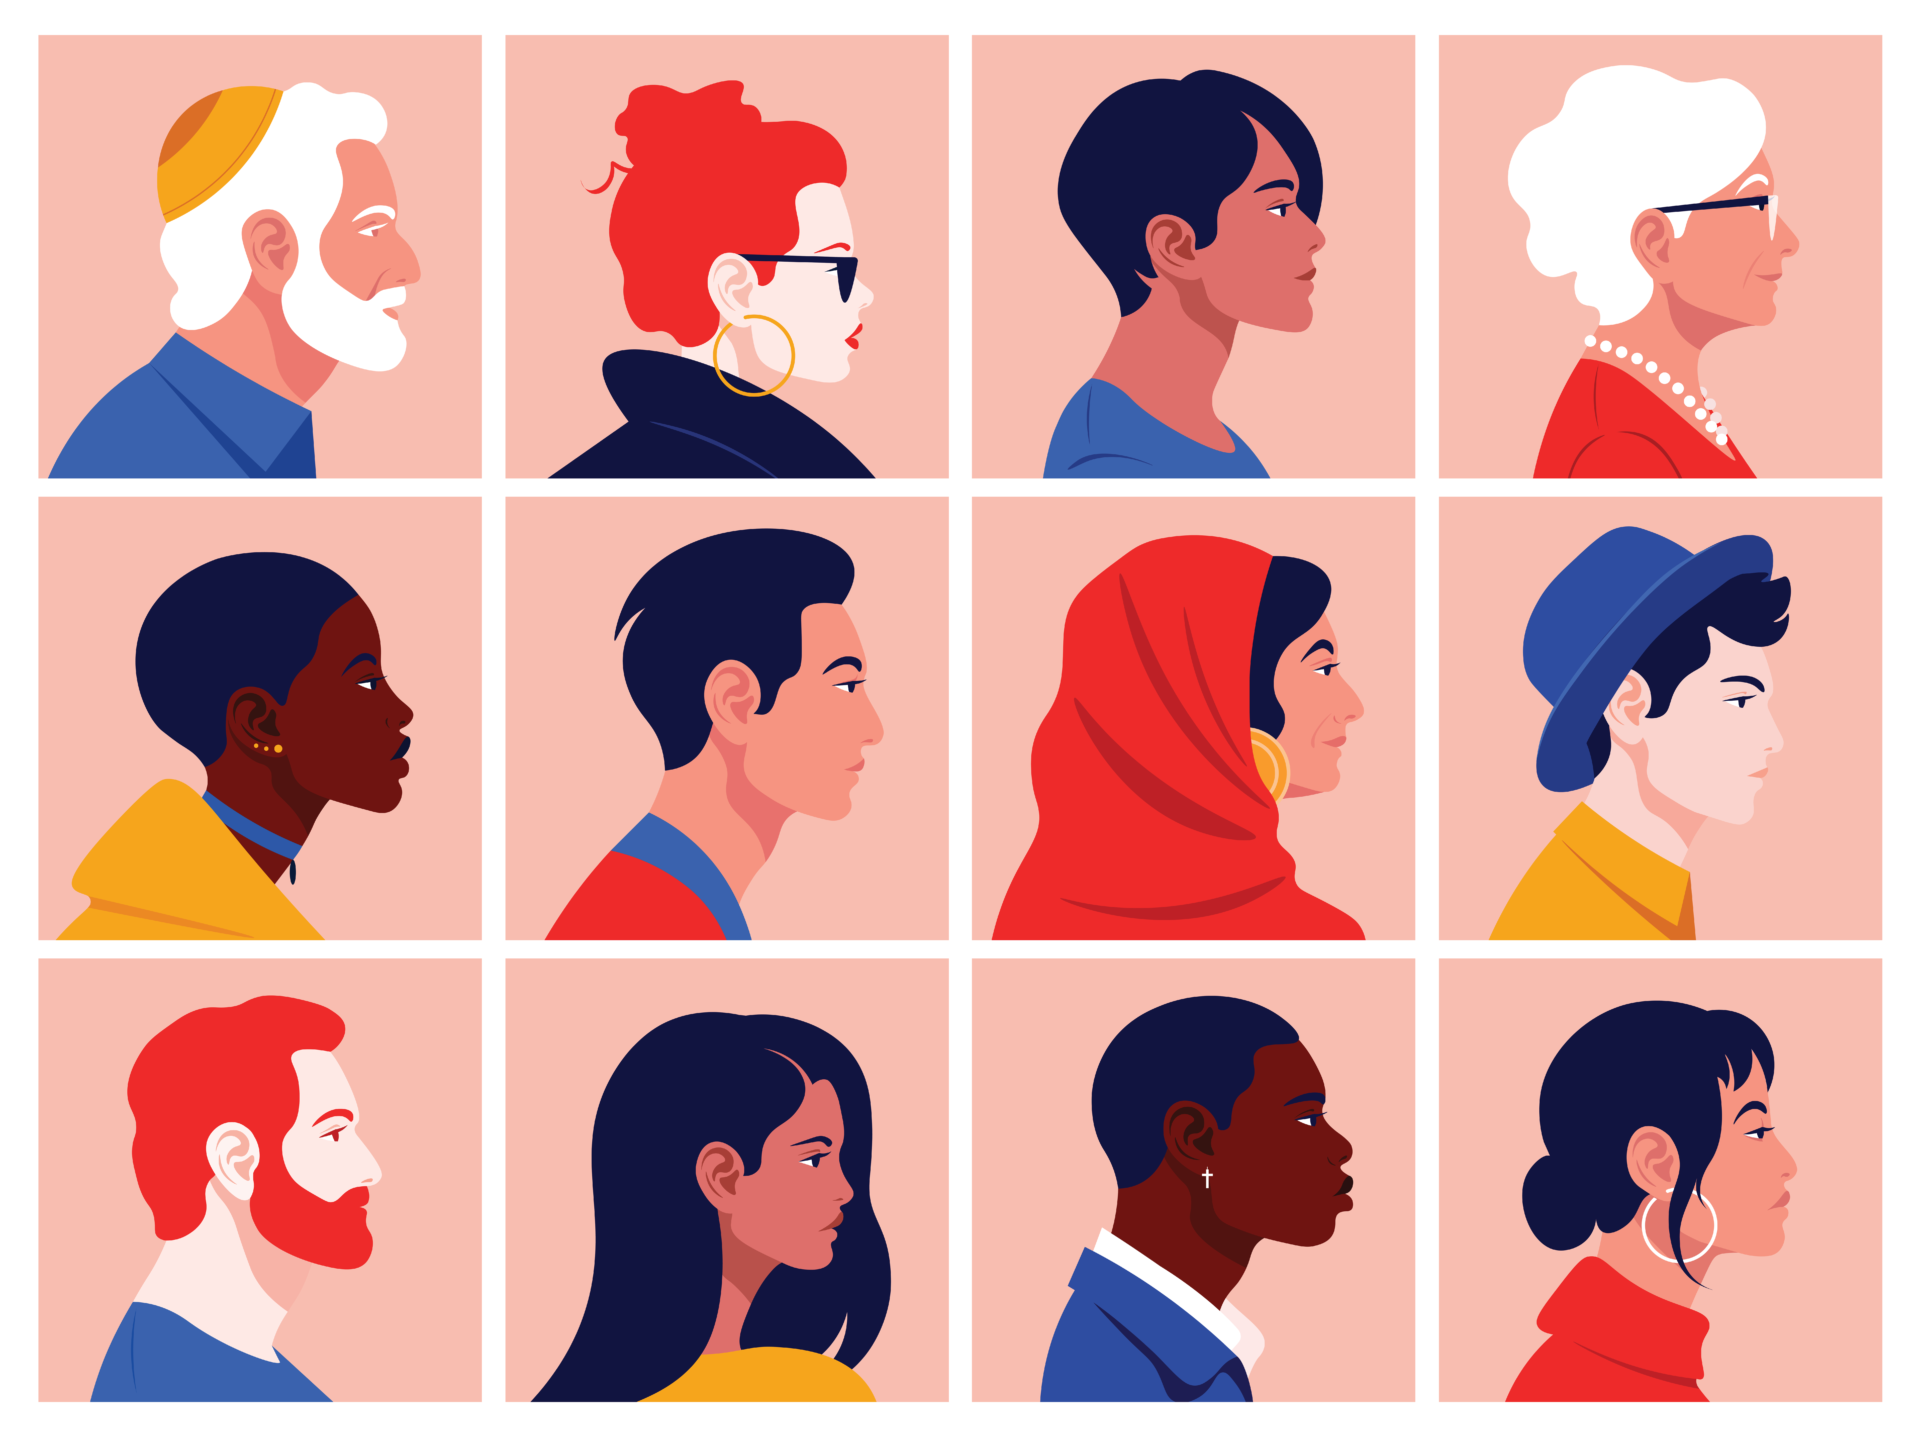 Care equity illustration of diverse patients